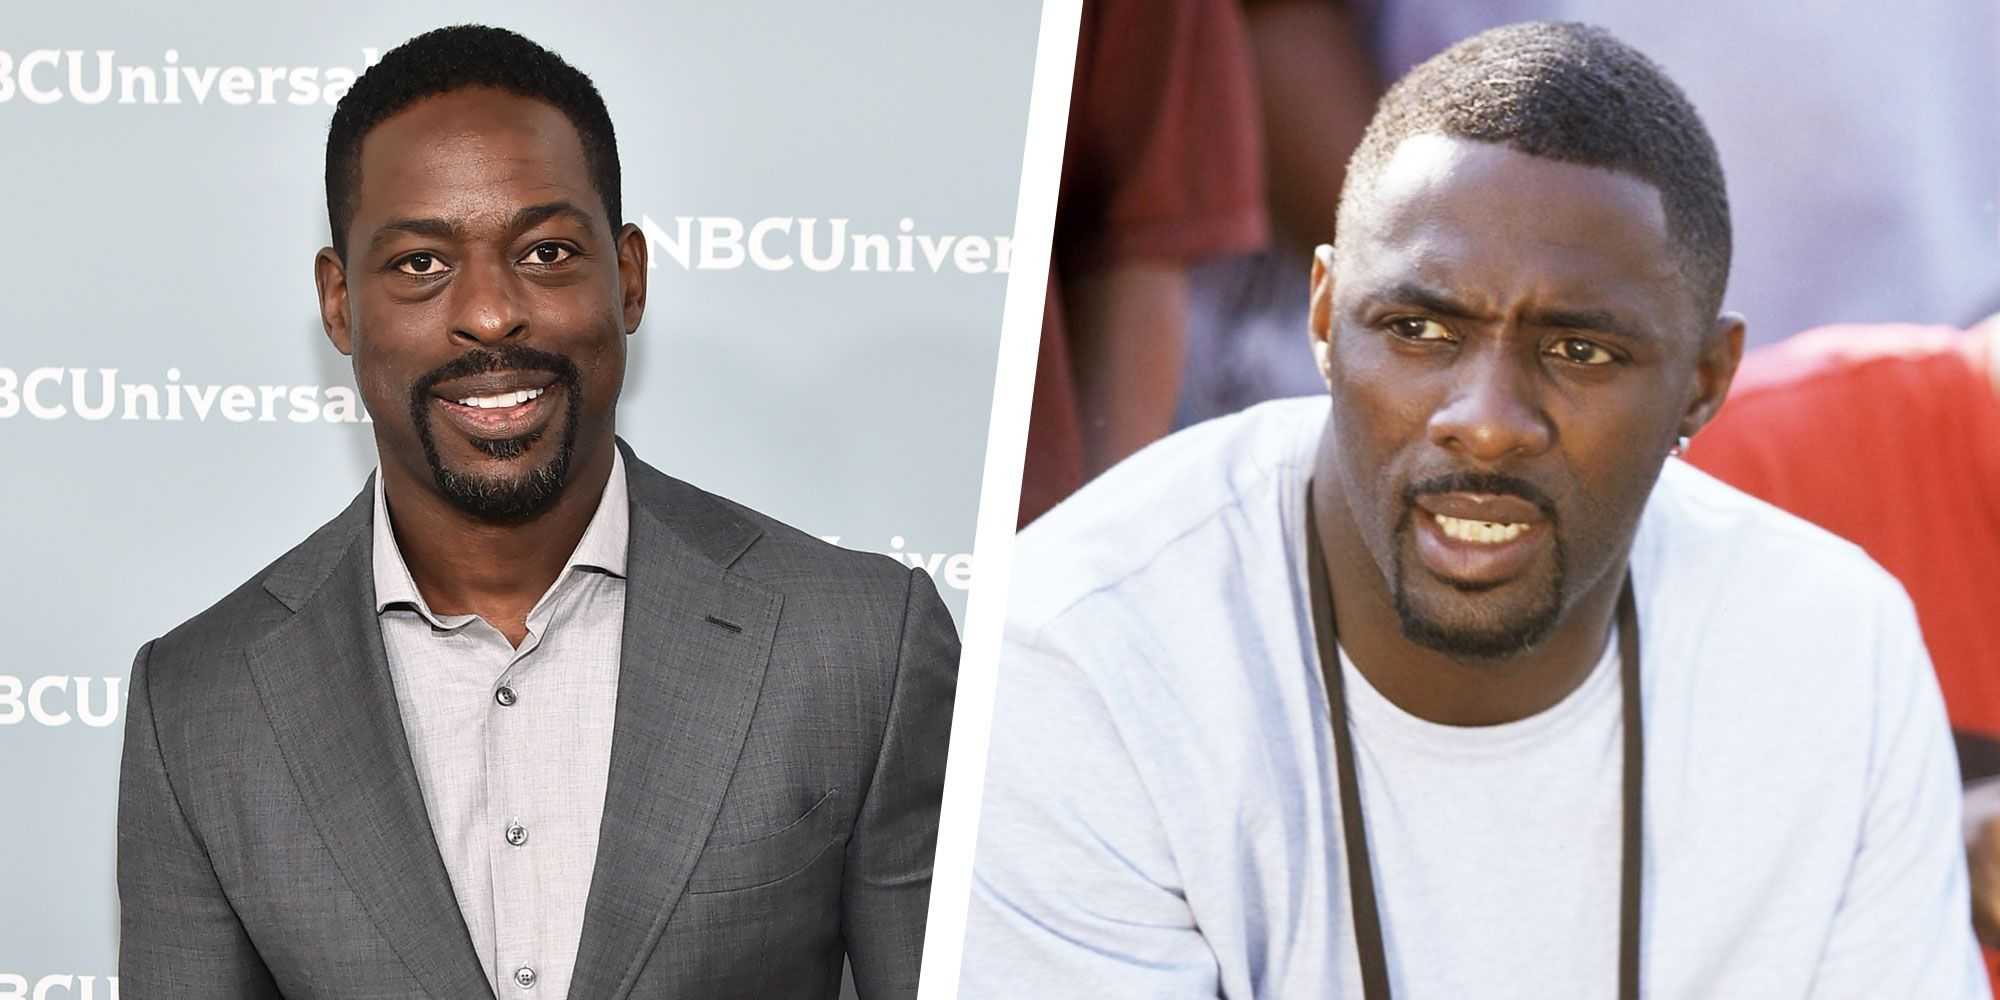 Sterling K. Brown Competed with Idris Elba to Play Stringer Bell on The Wire